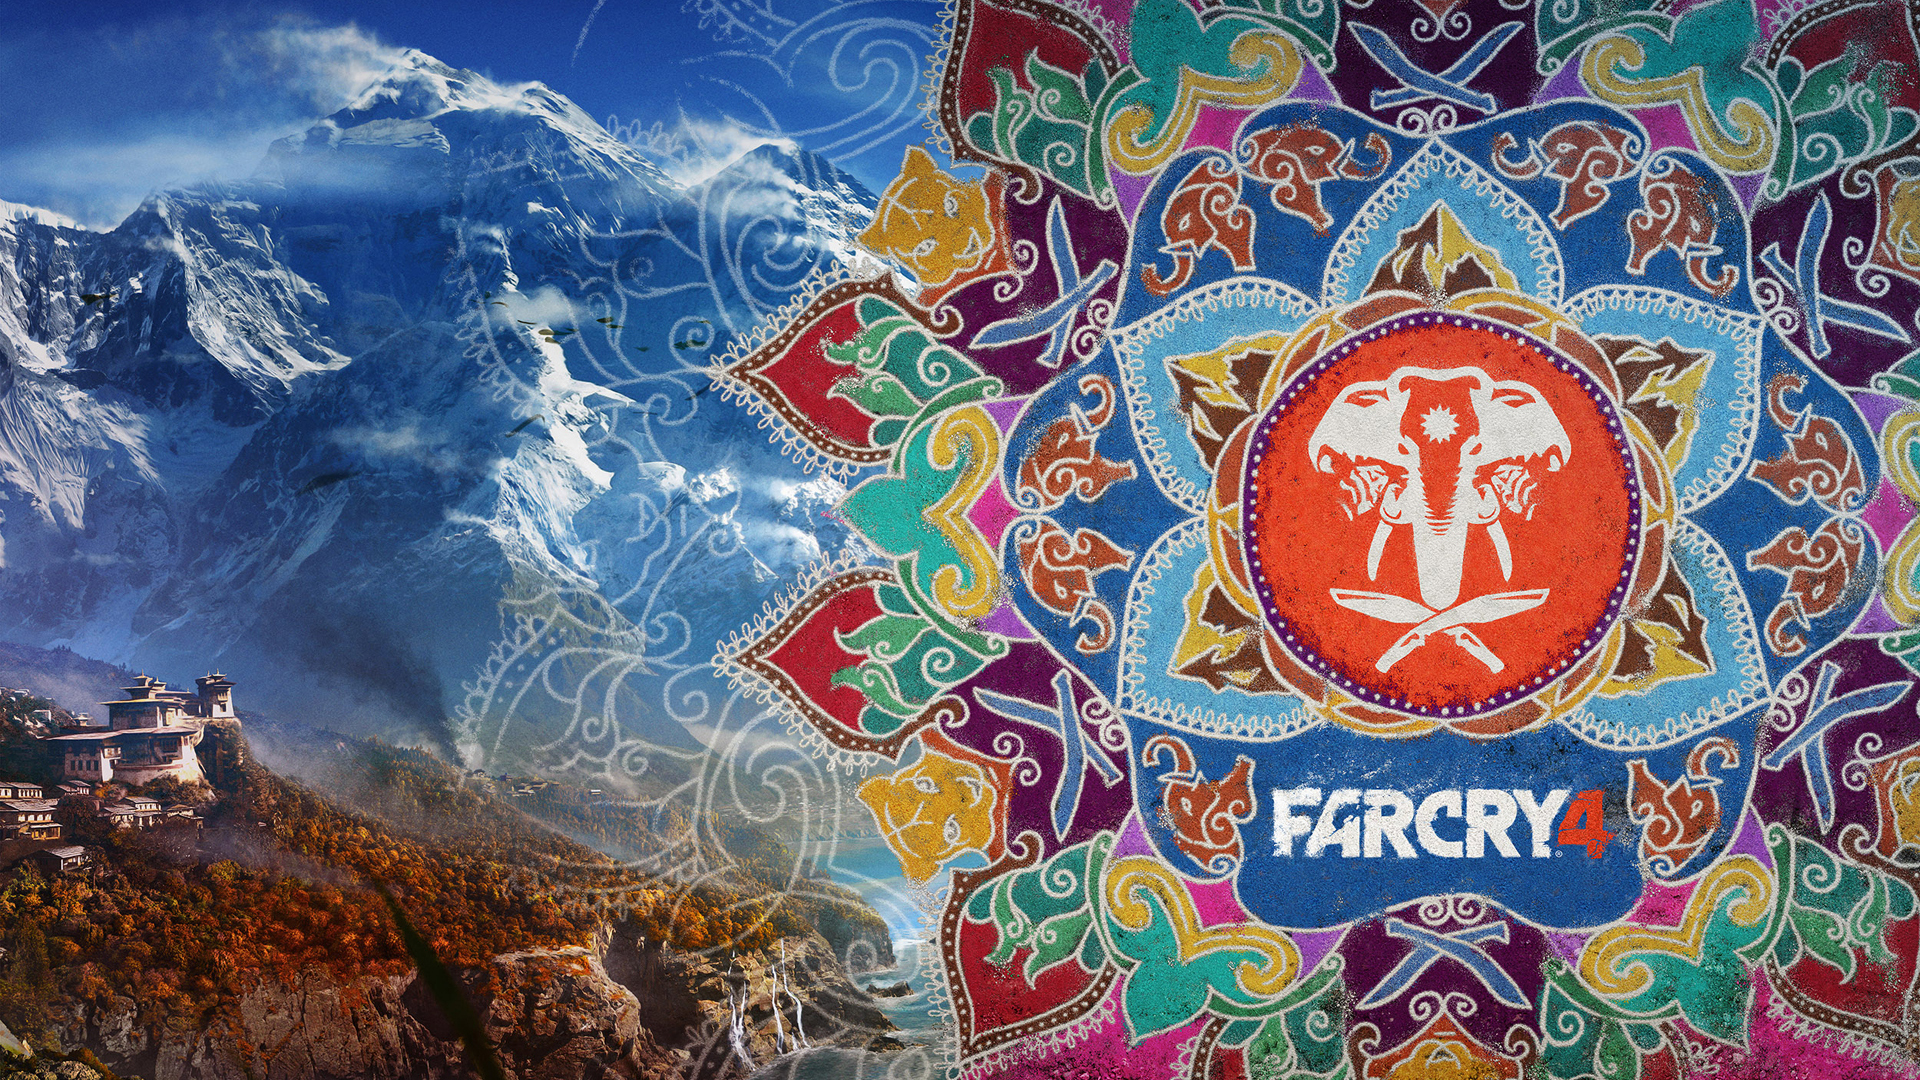 Far Cry 4 Wallpapers Hd Desktop And Mobile Backgrounds: Far Cry 4 Wallpaper 1920x1080